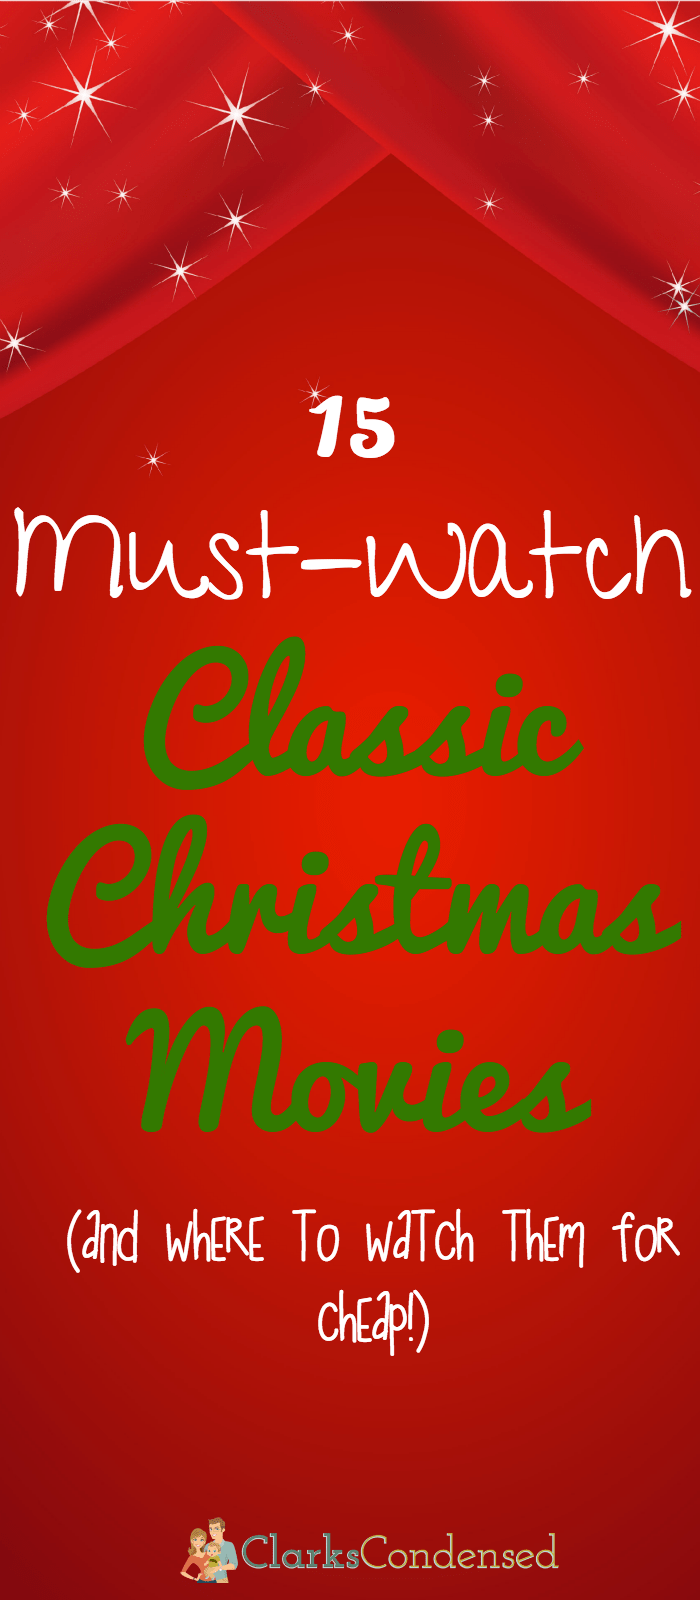 15 of our favorite classic Christmas movies that we watch every year - and where to watch them for cheap!